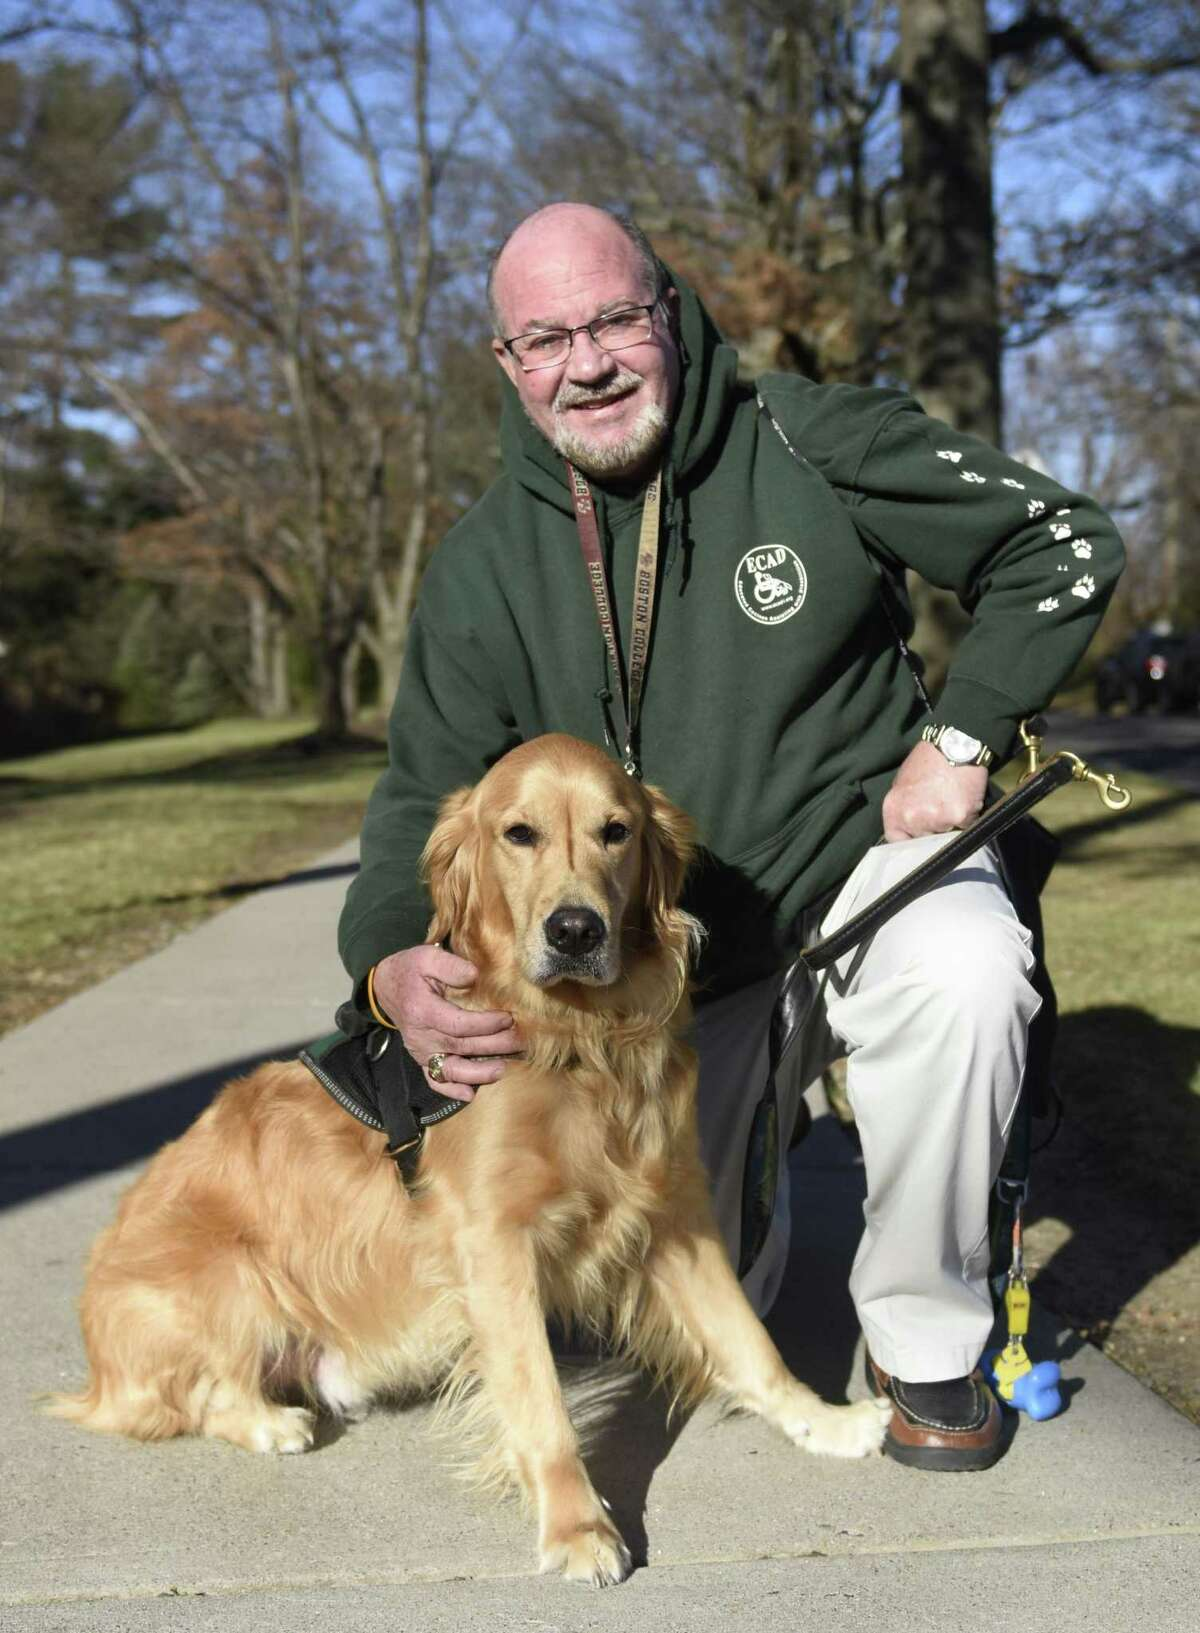 Tom Griffen poses with his service dog, Sterling, after the